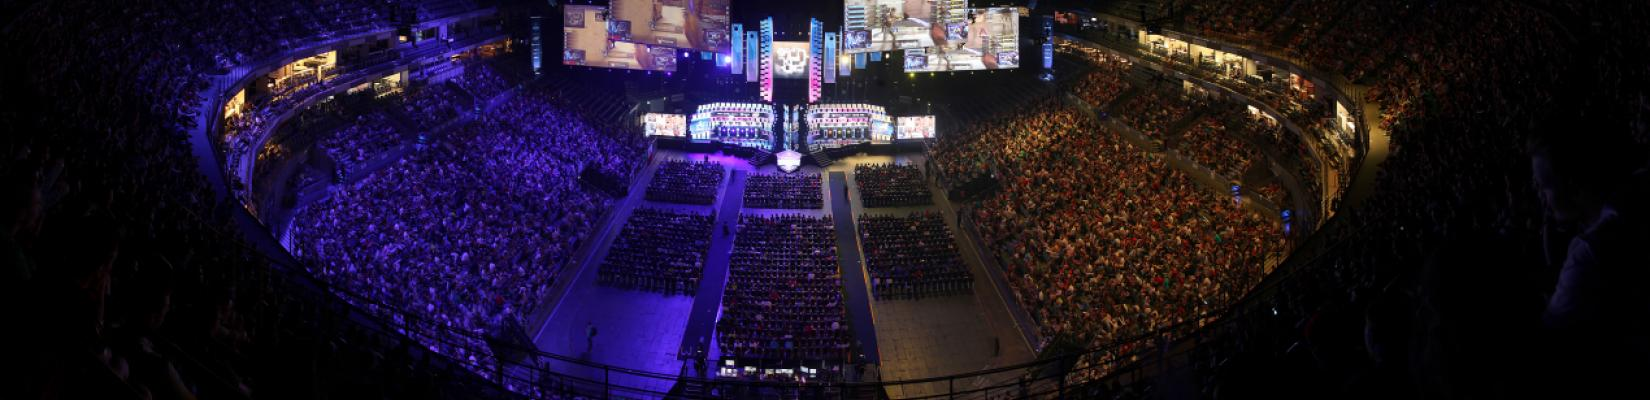 ESL One Köln 2017 - Panorama 1905*600.jpg